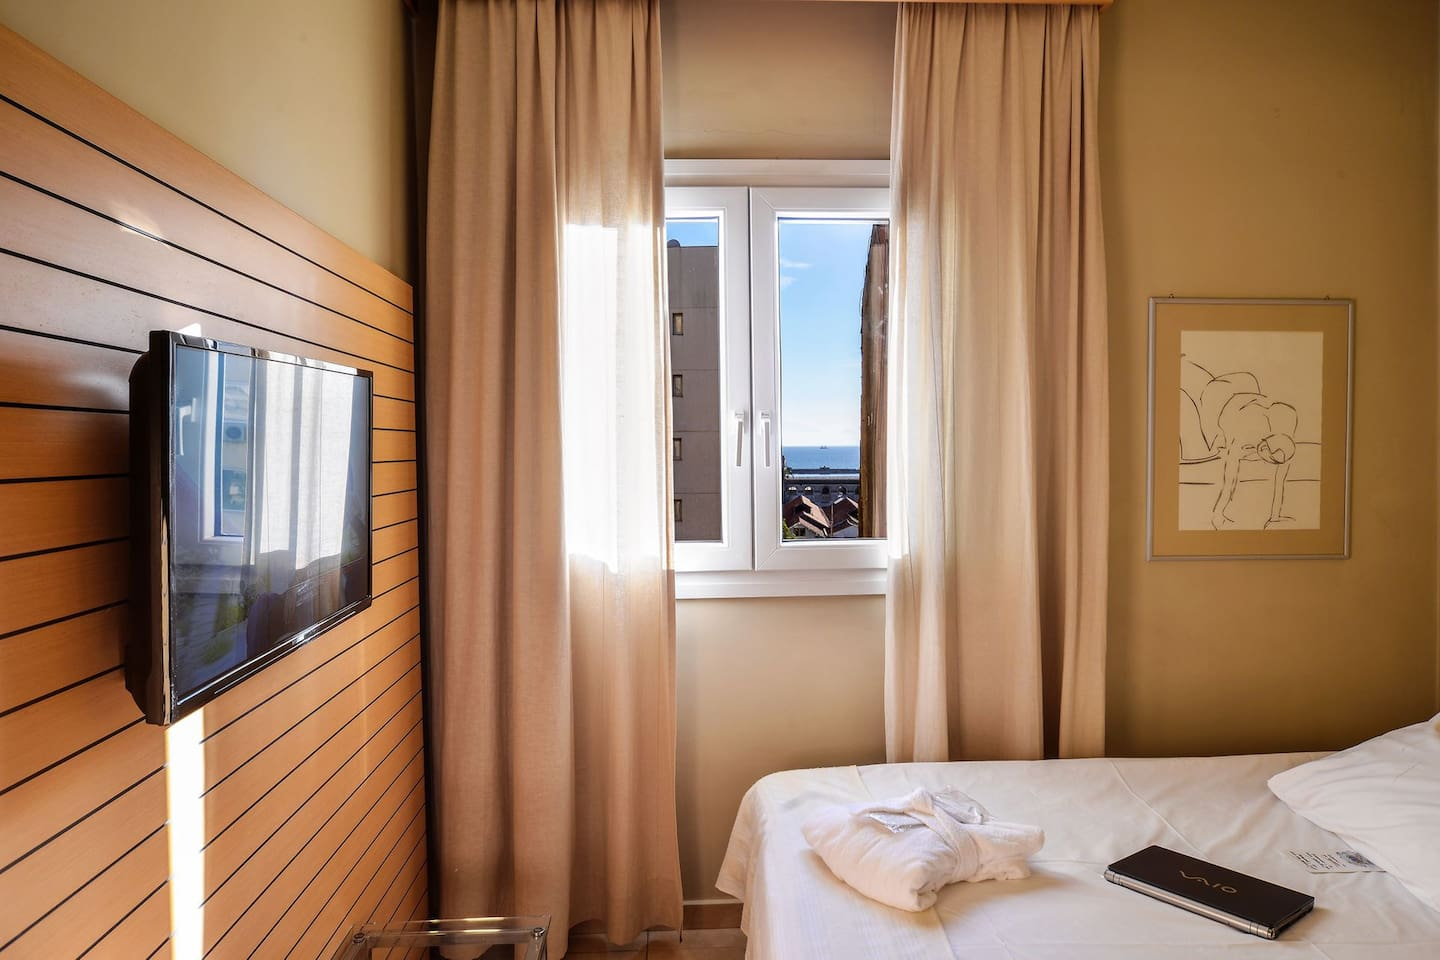 The Budget Single Room is ideal for the solo traveler who is looking for a short urban stay in downtown Thessaloniki as it provides direct access to the endless commercial and entertainment possibilities of the city.